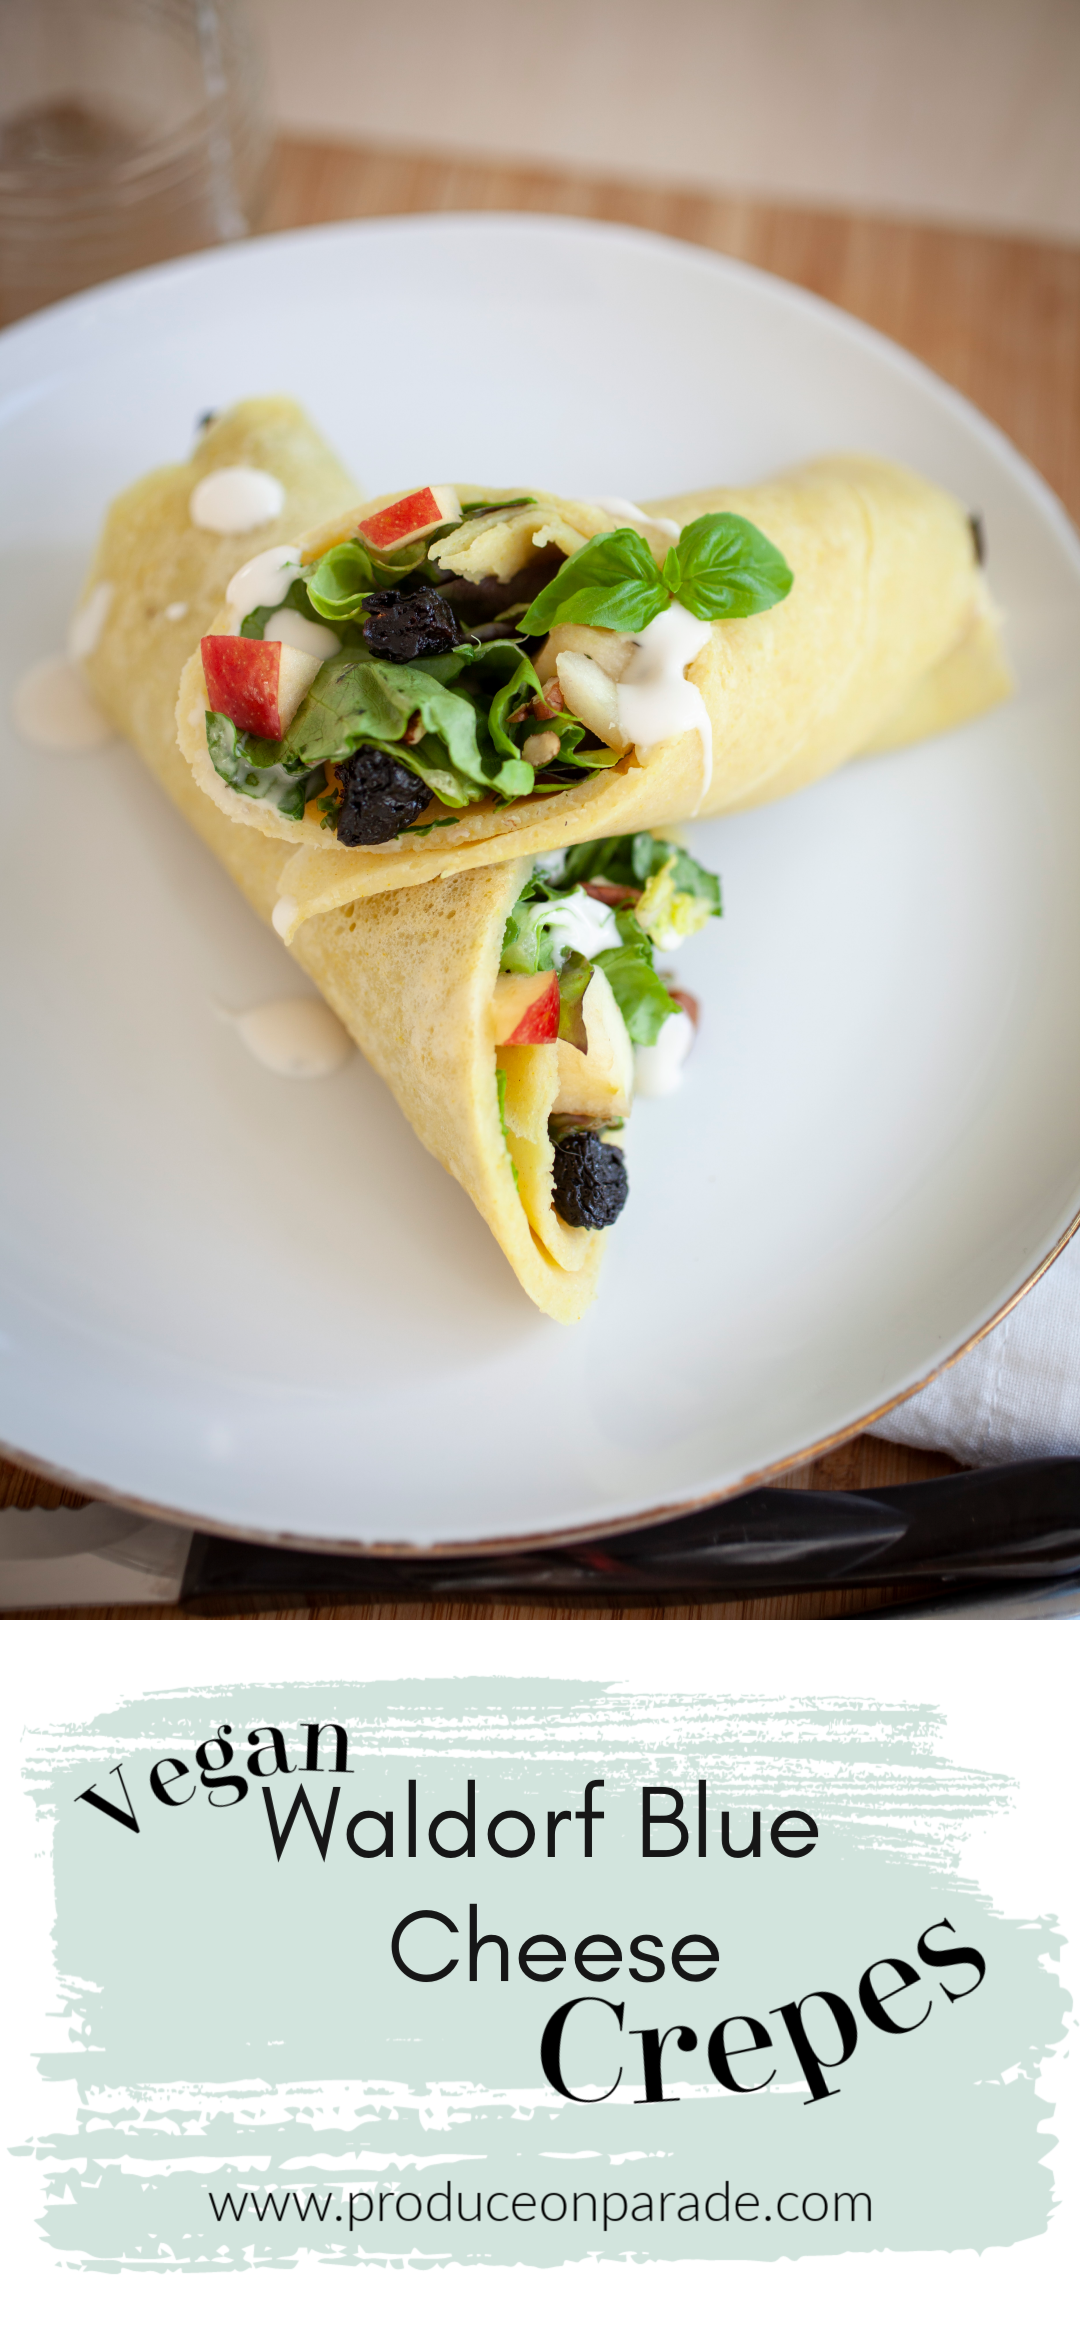 Vegan Waldorf Blue Cheese Crepes - Produce On Parade -Three of my very favorite things all wrapped up to make a delicious meal: waldorf salad, blue cheese dressing, and crepes! This is such an easy and quick dish that's great for breakfast, brunch, or lunch. Serve at a gathering and it'll definitely be the star of the party.